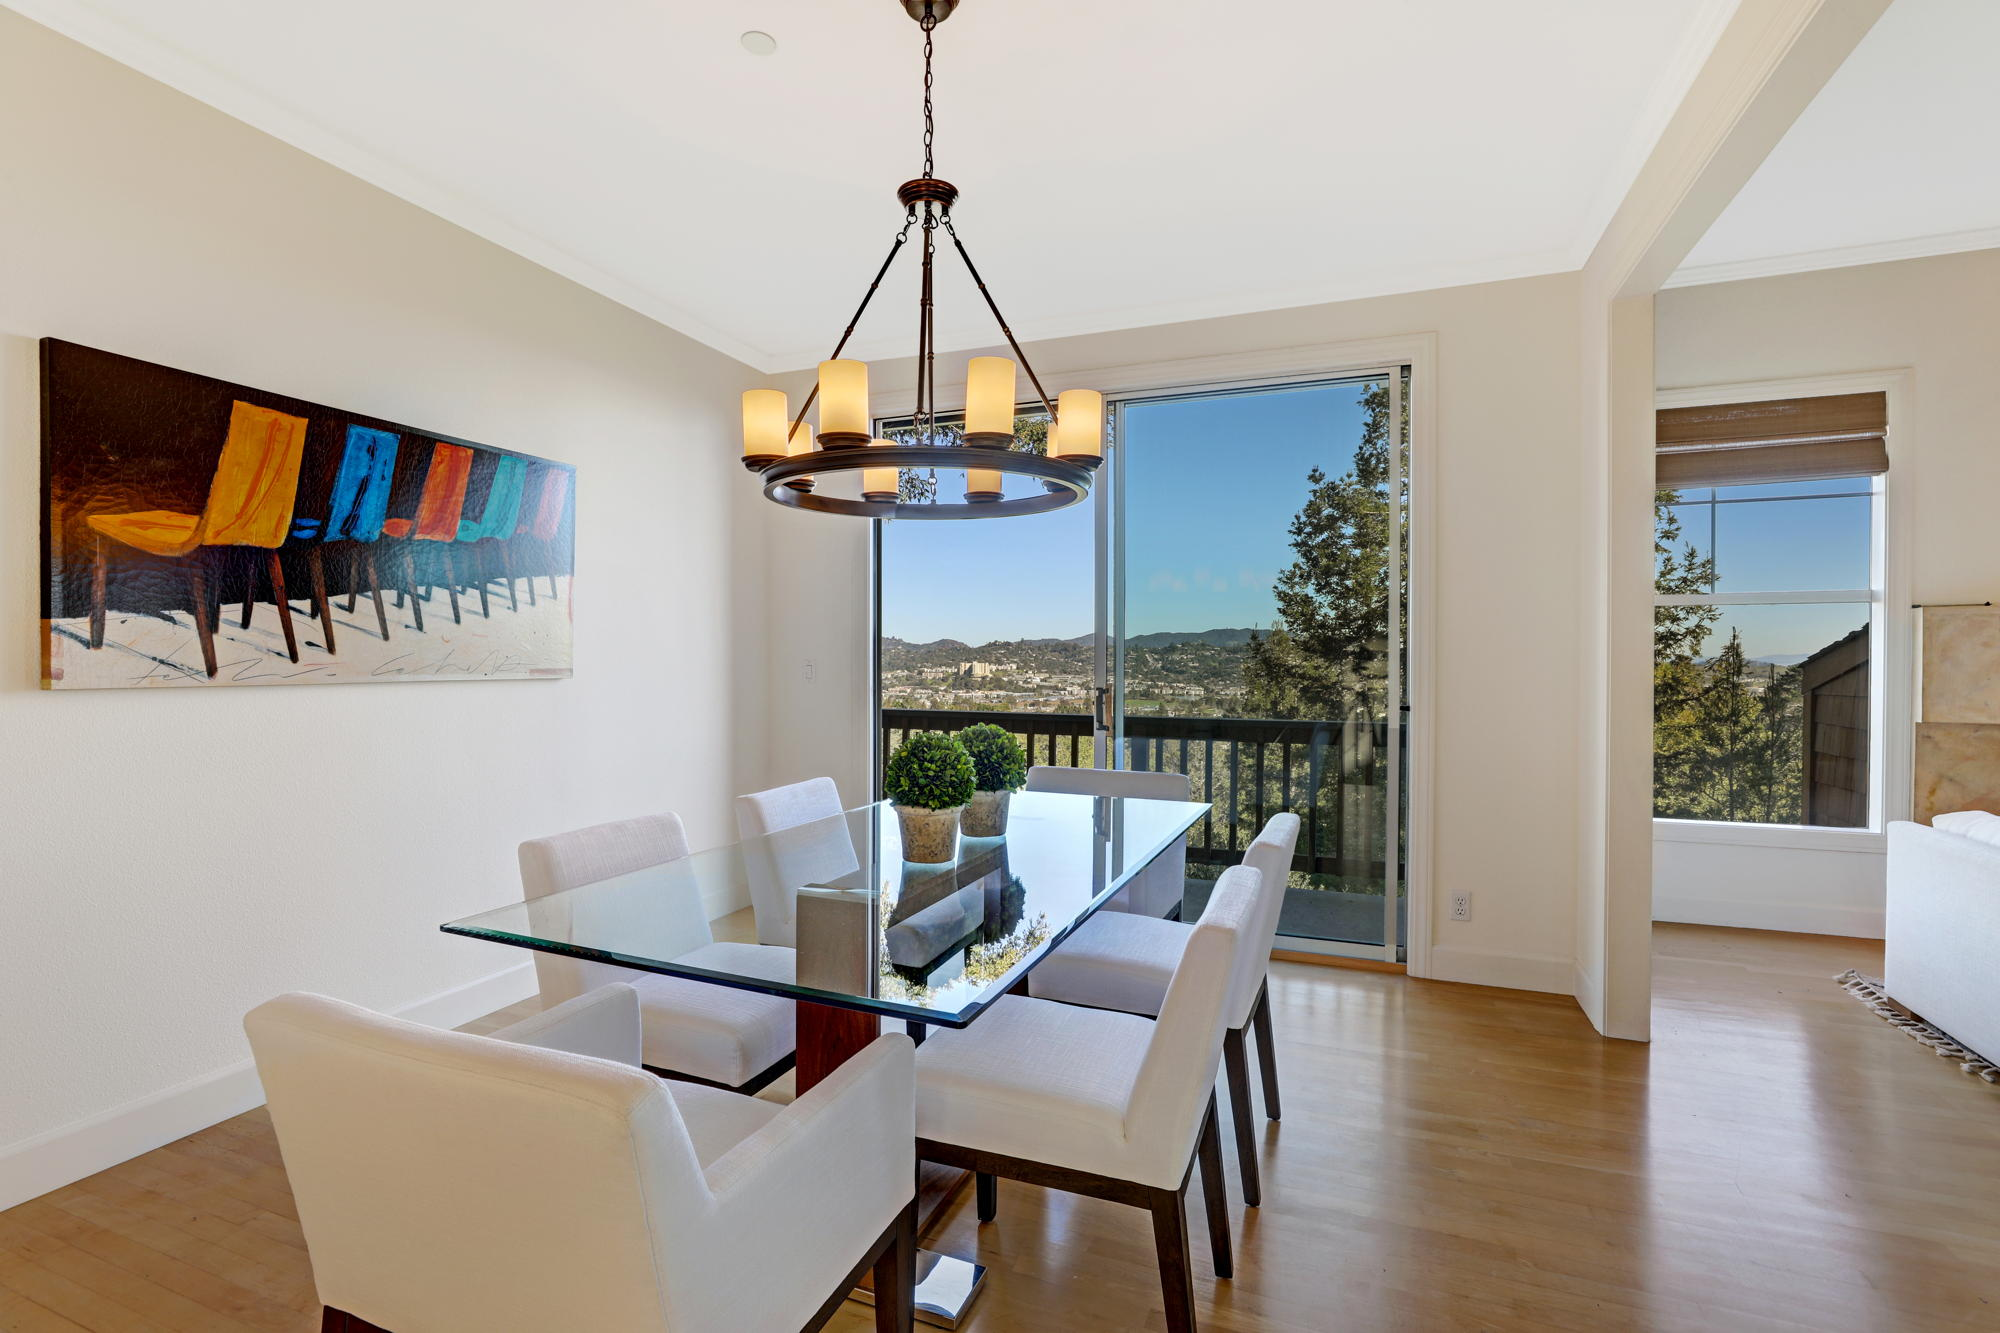 231 Marin Vista Larkspur #1 Realtor - 26 - Own Marin with Compass Real Estate.jpg